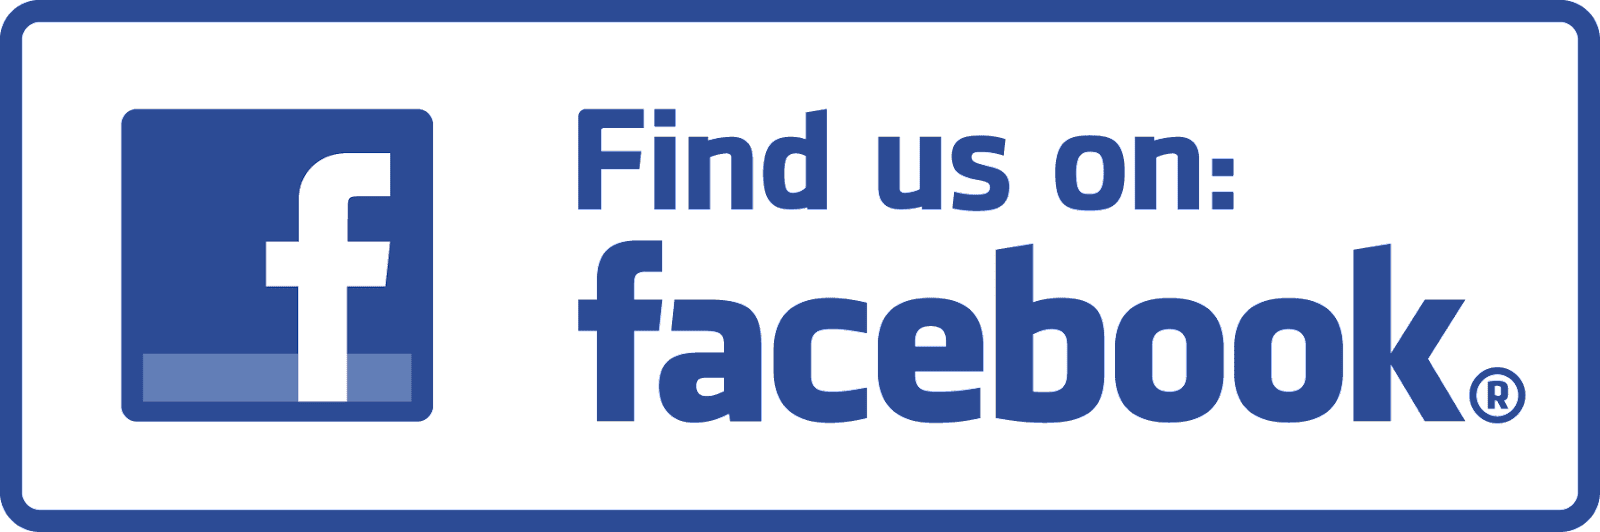 Image result for find us on facebook logo